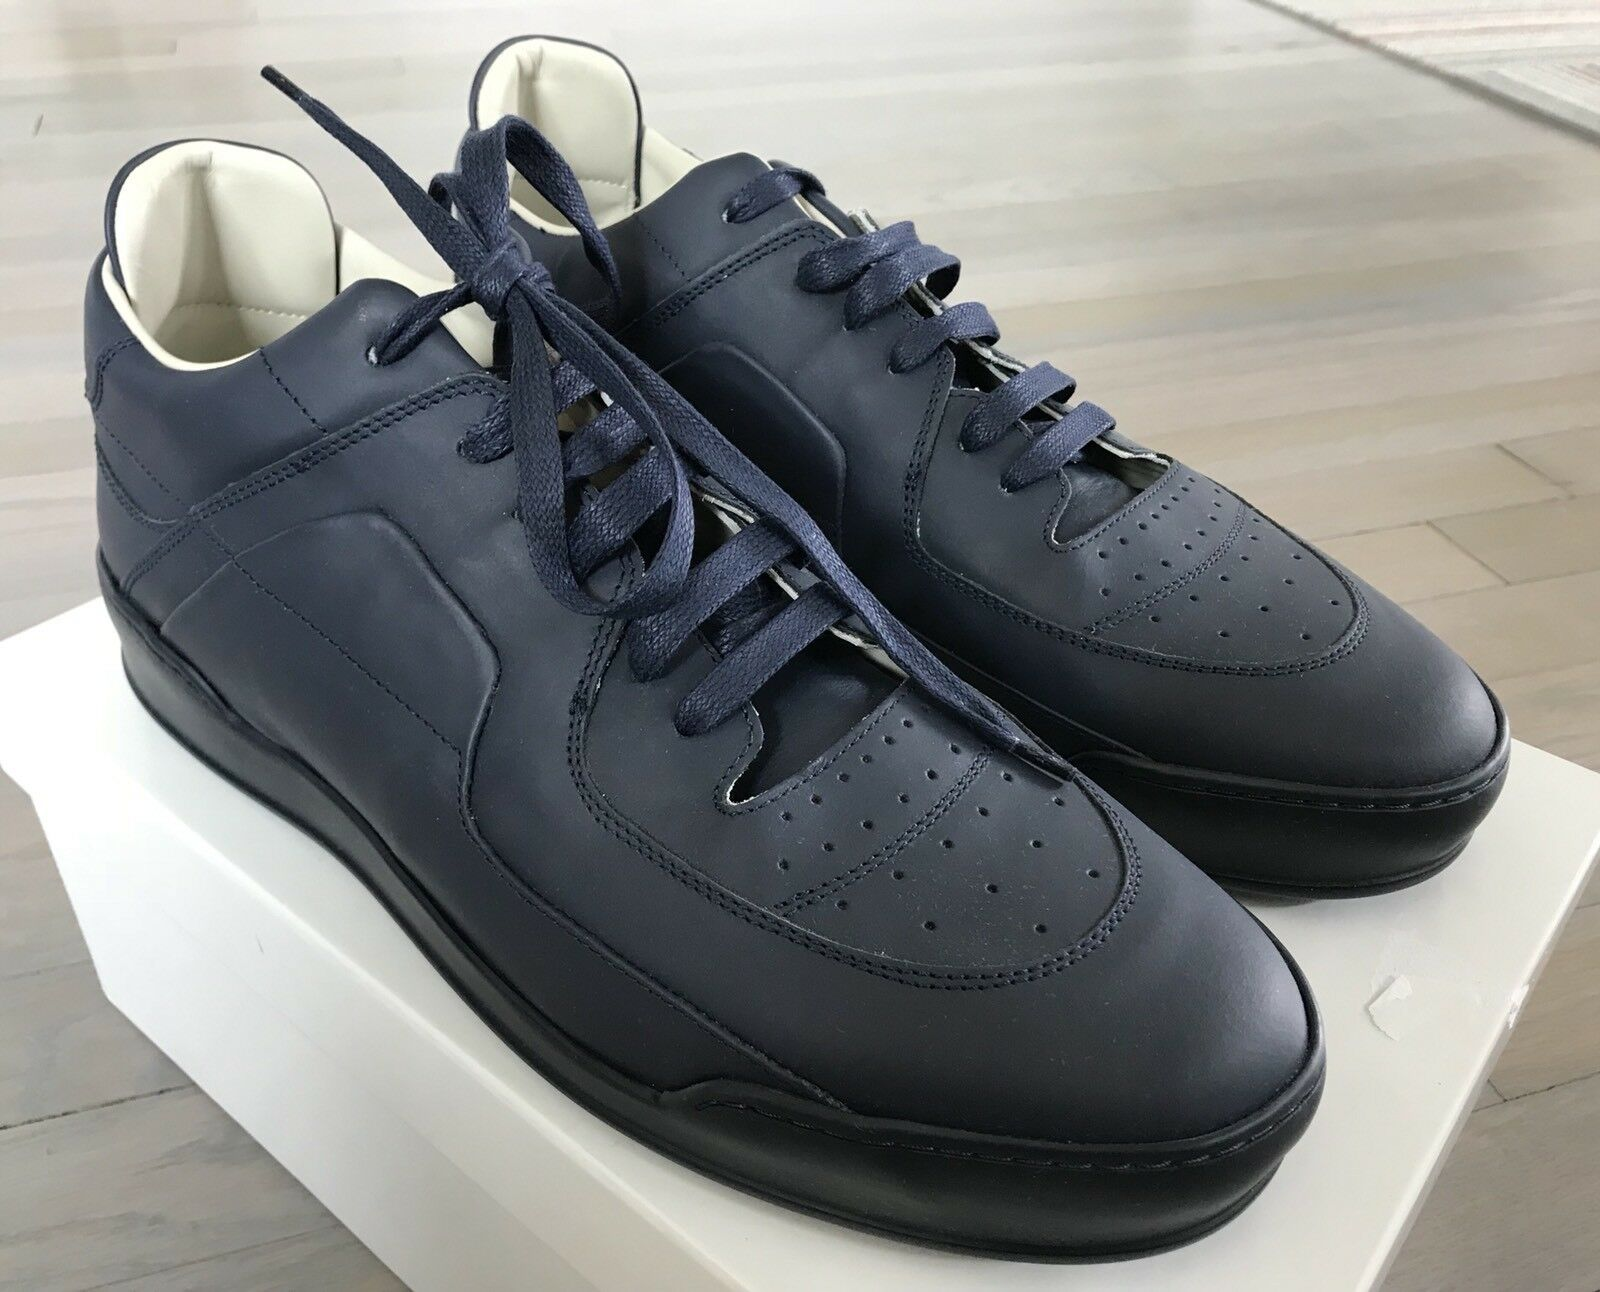 550 Maison Margiela Navy Blue Leather Sneakers size US 9 Made in Italy